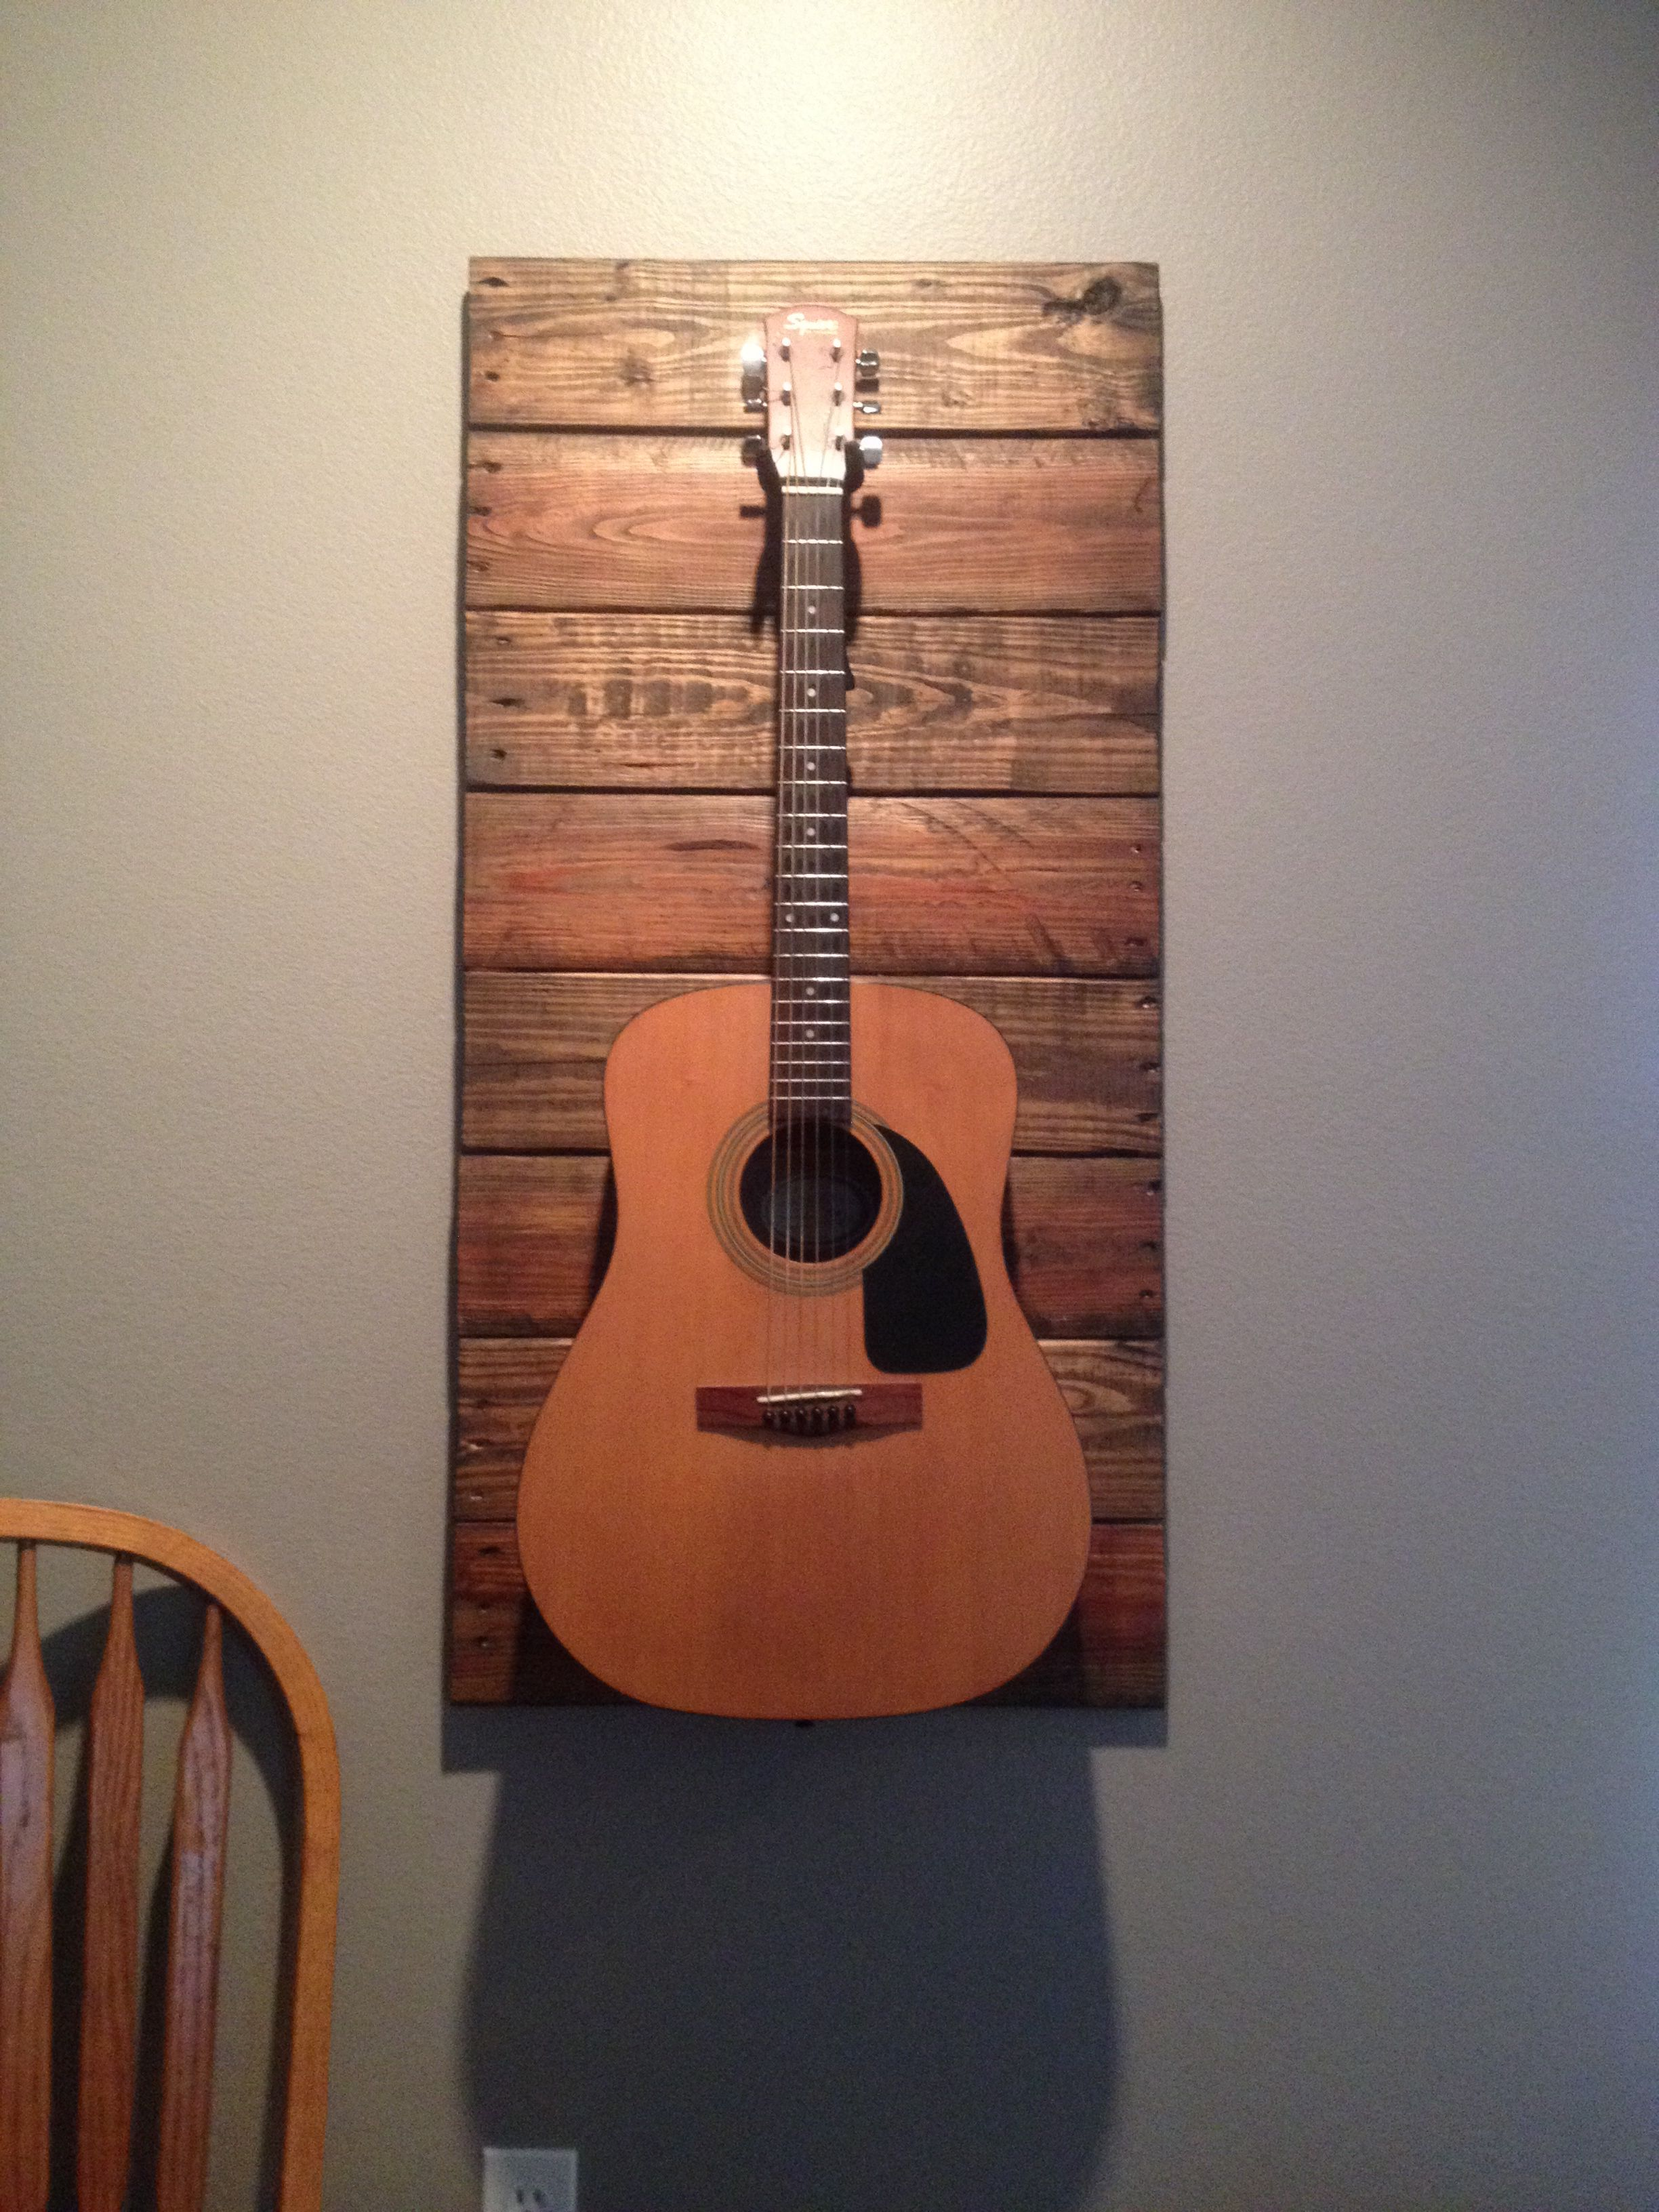 Guitar Decor For Bedroom Just Finished This Total Cost 2 Made It With A Free